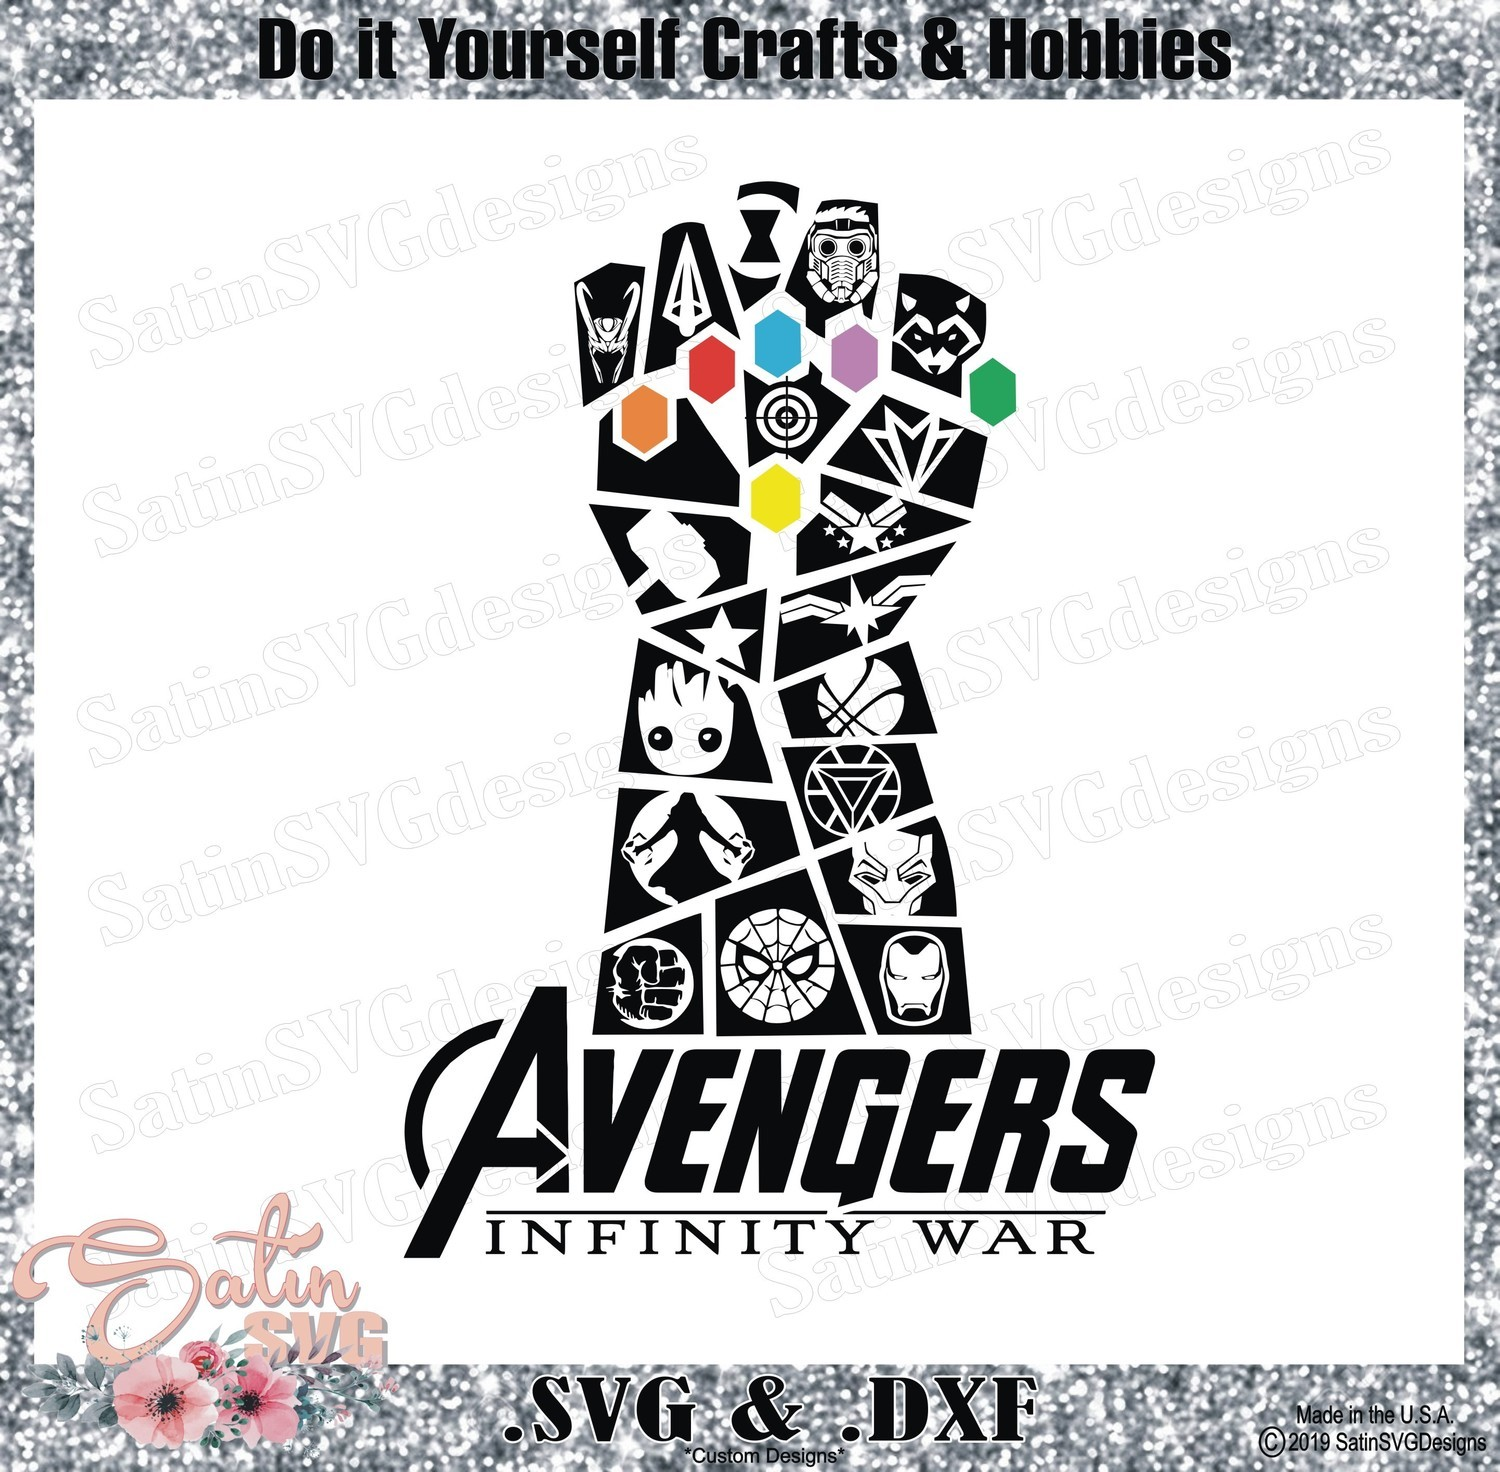 Avengers Infinity War End Game Thanos Glove Marvel Design SVG Files, Cricut, Silhouette Studio, Digital Cut Files